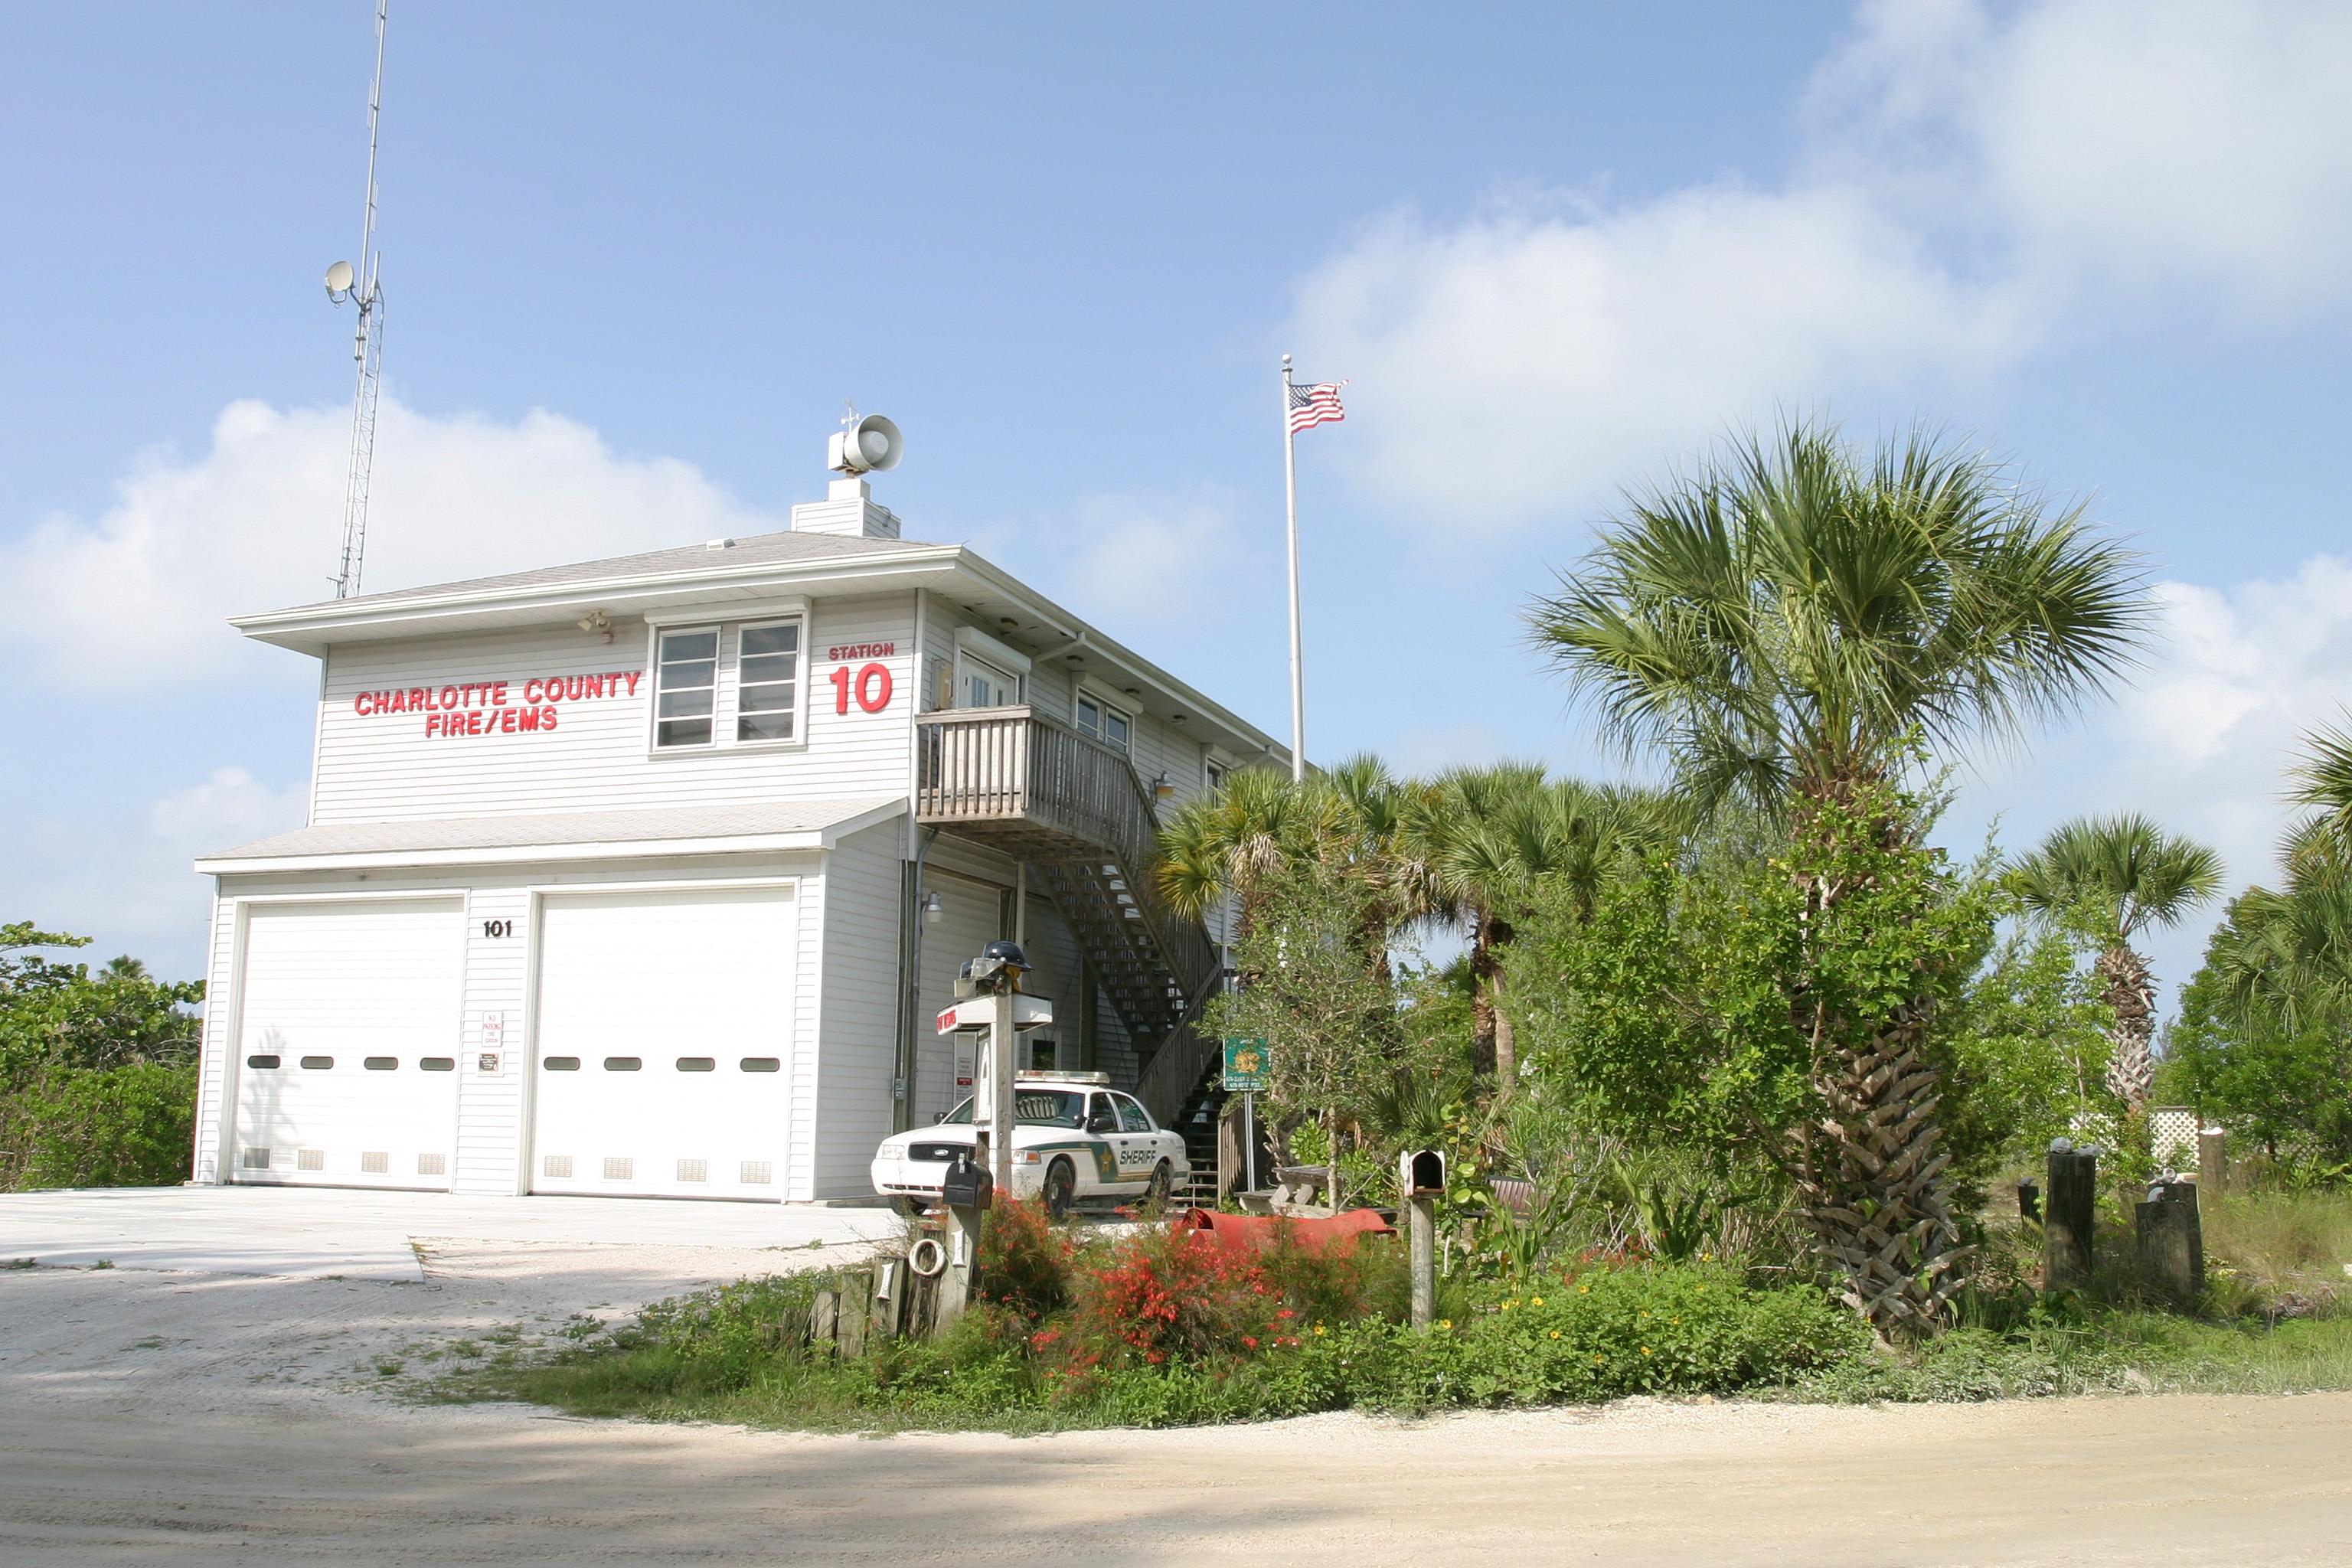 Local Firehouse